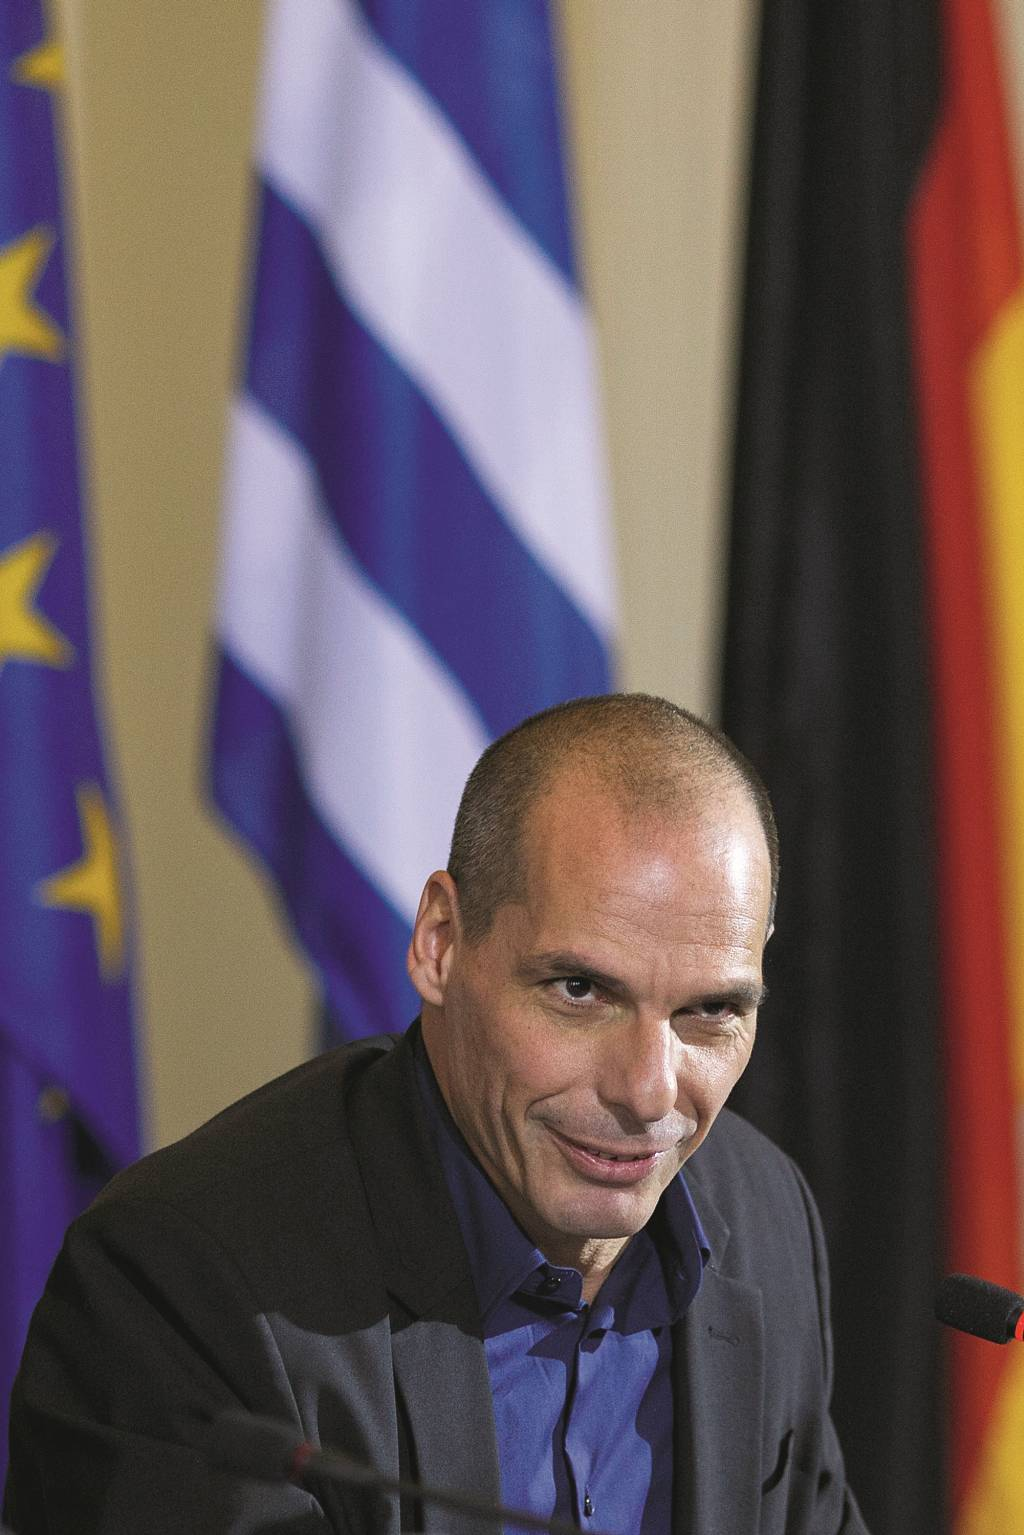 BERLIN, GERMANY - FEBRUARY 05:  New Greek Finance Minister Yanis Varoufakis attends a press conference with German Finance Minister Wolfgang Schaeuble following talks on February 5, 2015 in Berlin, Germany. Varoufakis is touring several European cities and yesterday met with Mario Draghi at the European Central Bank following announcements by the new Greek government to sharply alter its relationship with the troika of loan-giving entities.  (Photo by Carsten Koall/Getty Images)